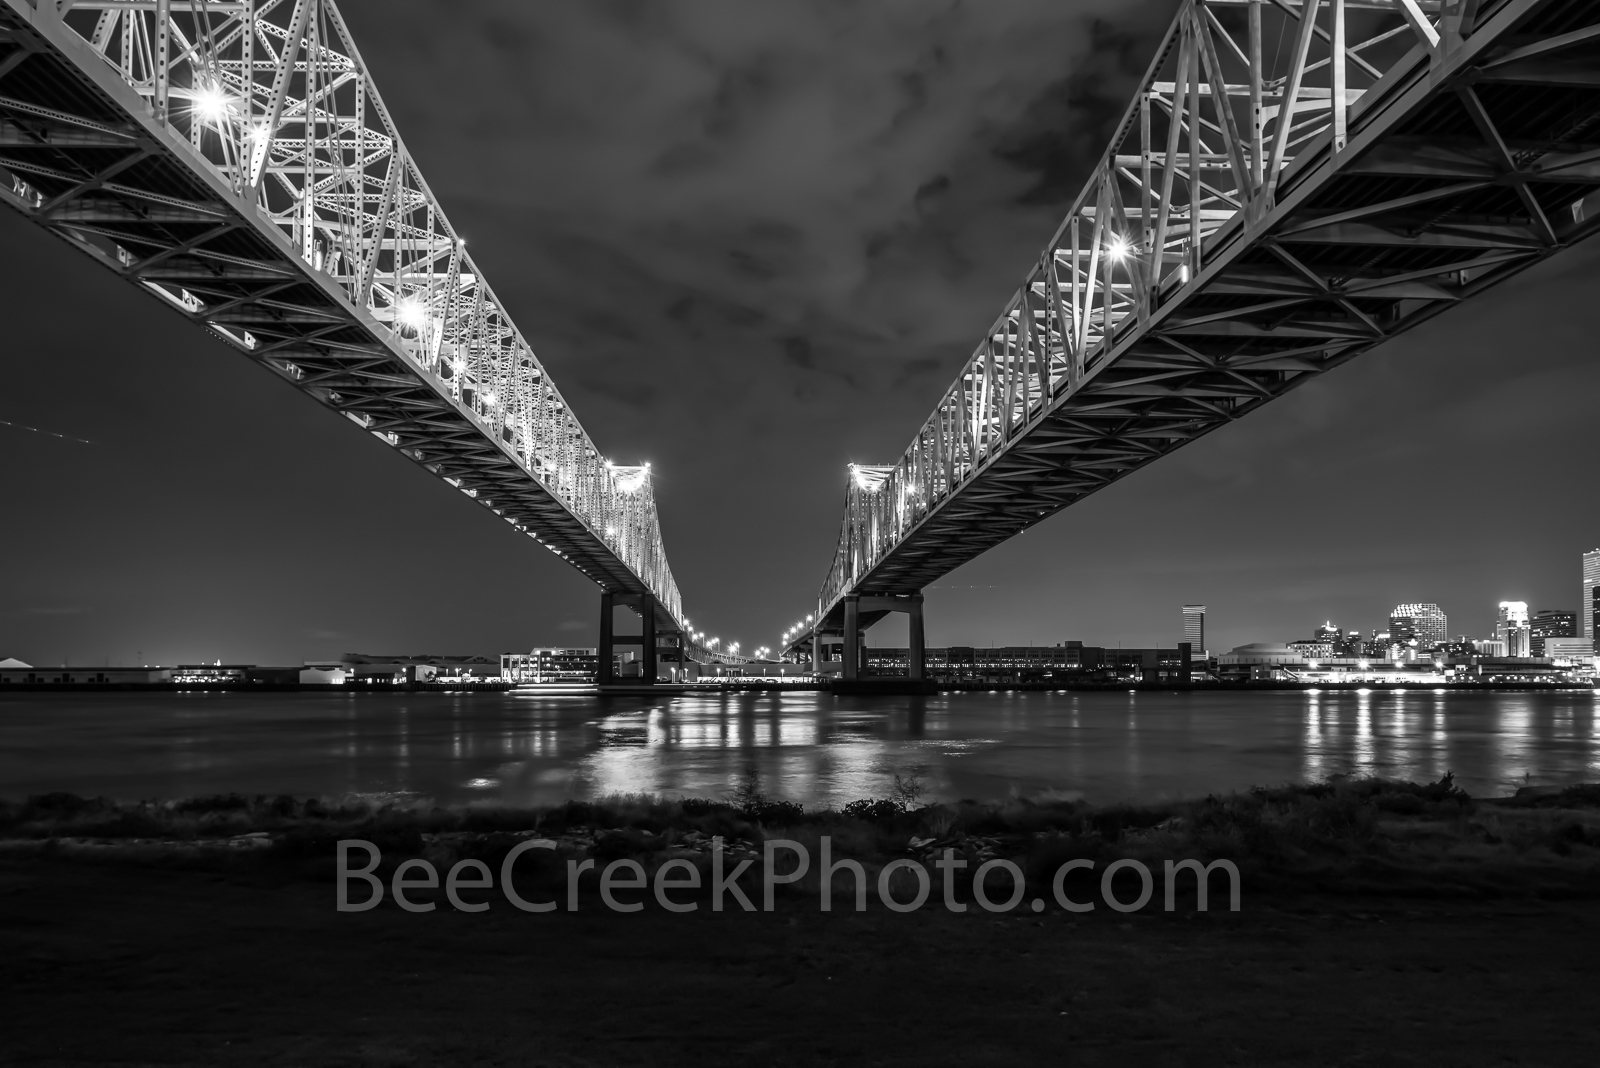 Mississippi River Bridge in BW - Mississippi river bridges in New Orleans or also called the Cresent bridge connection...